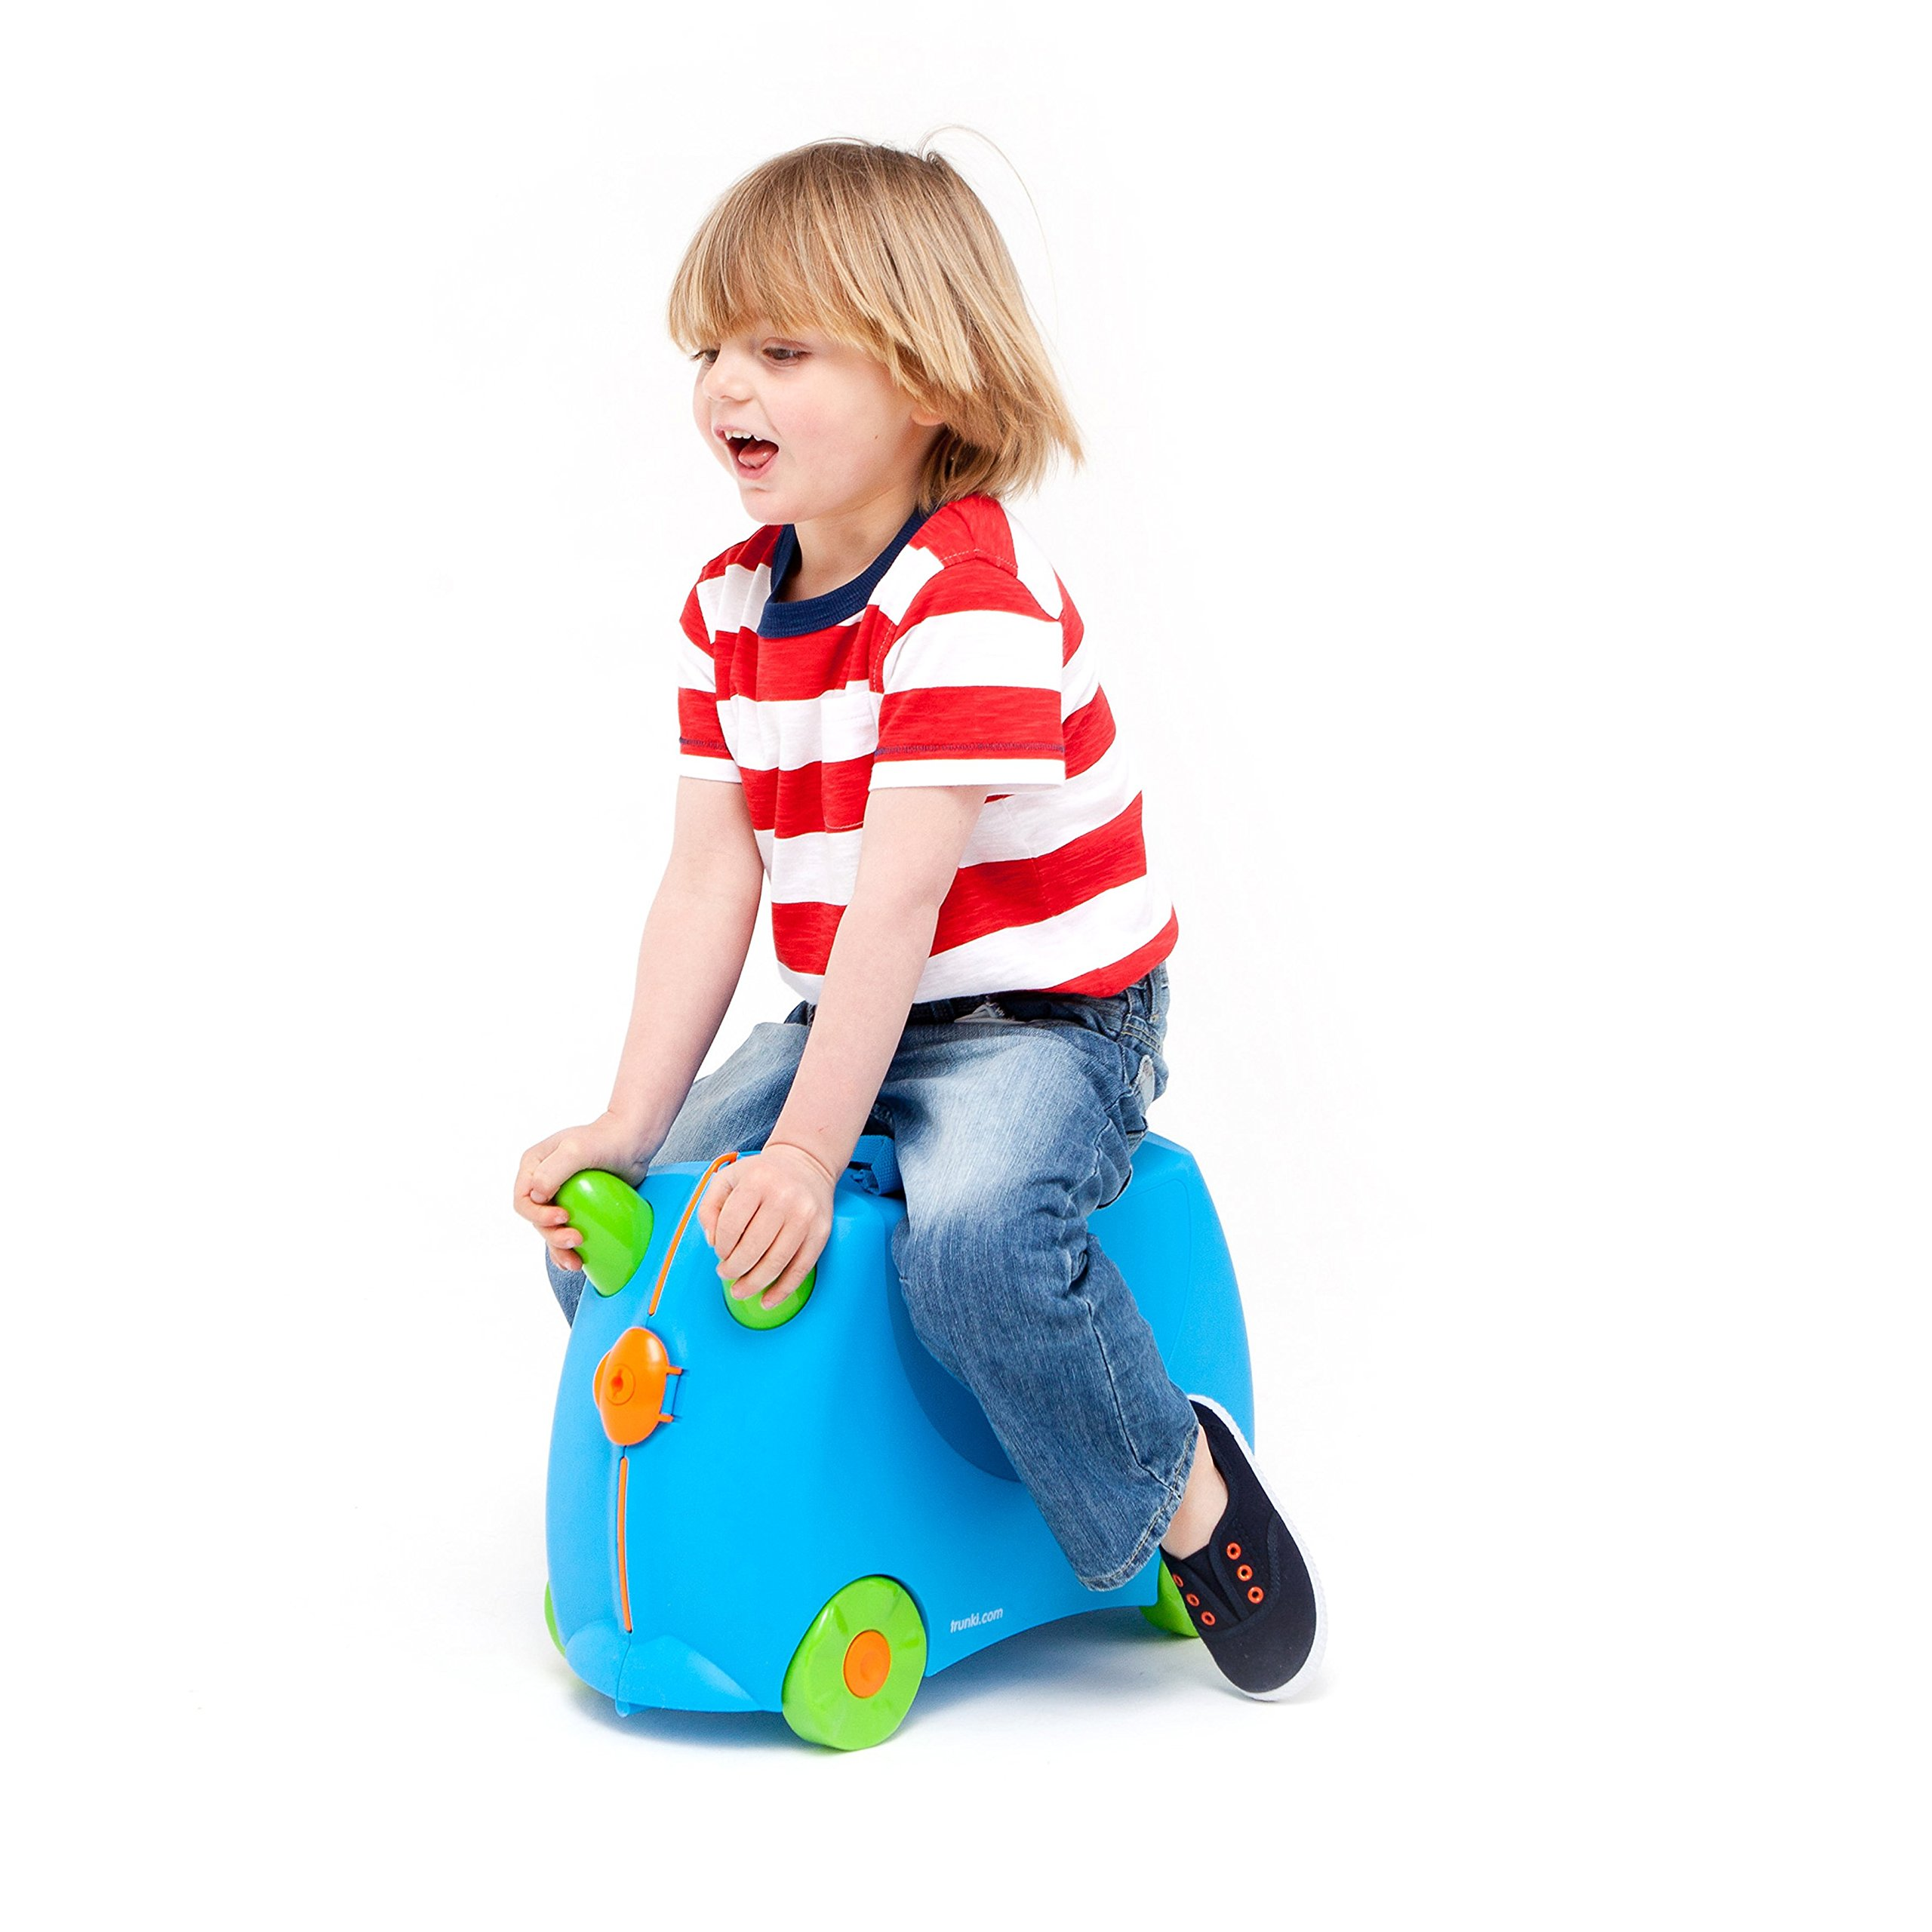 Trunki Original Kids Ride-On Suitcase and Carry-On - Terrance (Blue) by Trunki (Image #3)